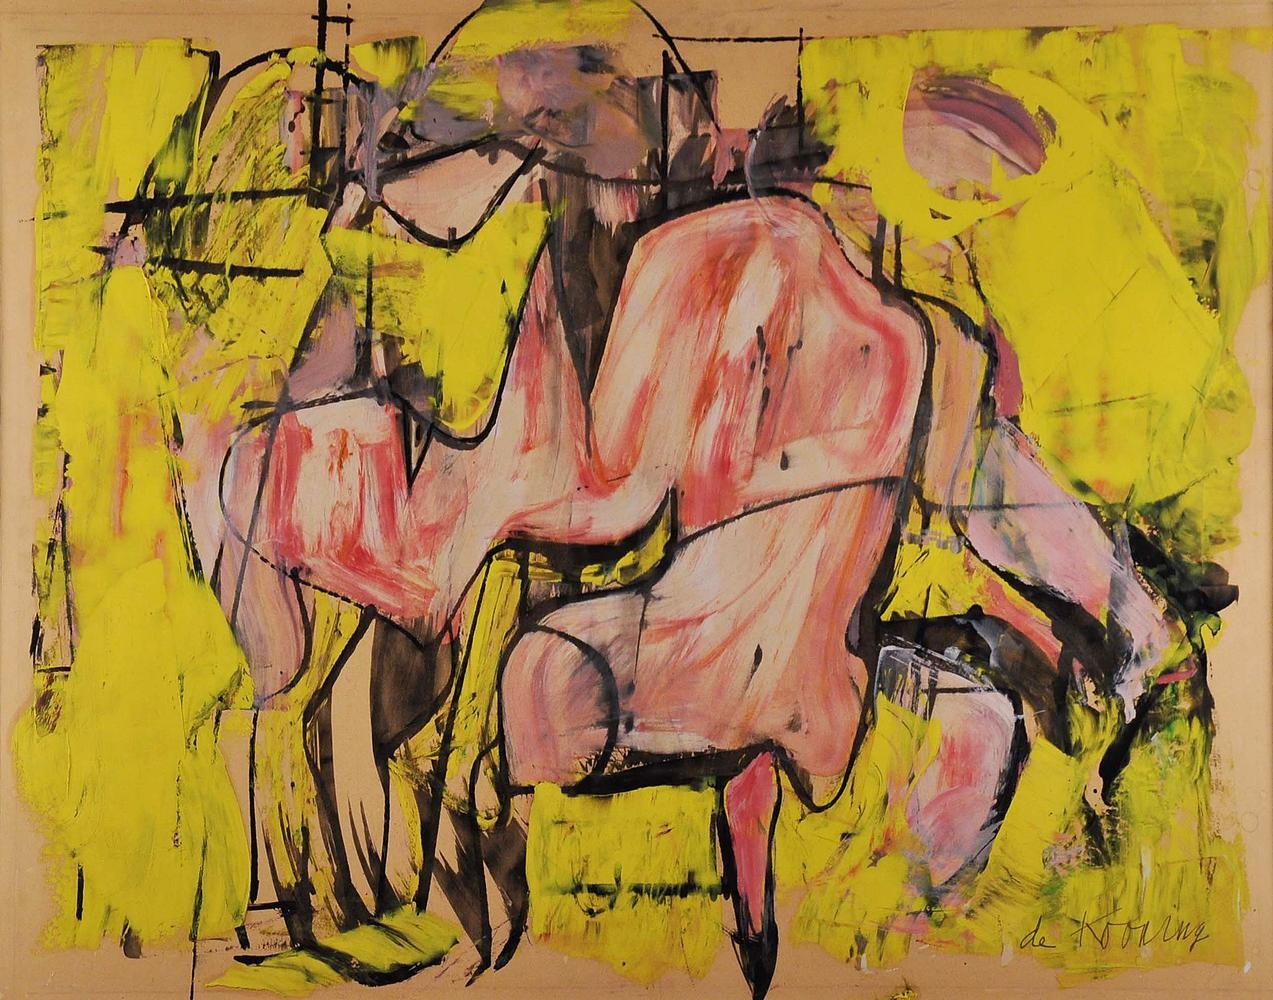 Willem de Kooning Red Torso circa 1948-49 oil on paper 18 x 23 1/4 inches (45.7 x 59.1 cm)